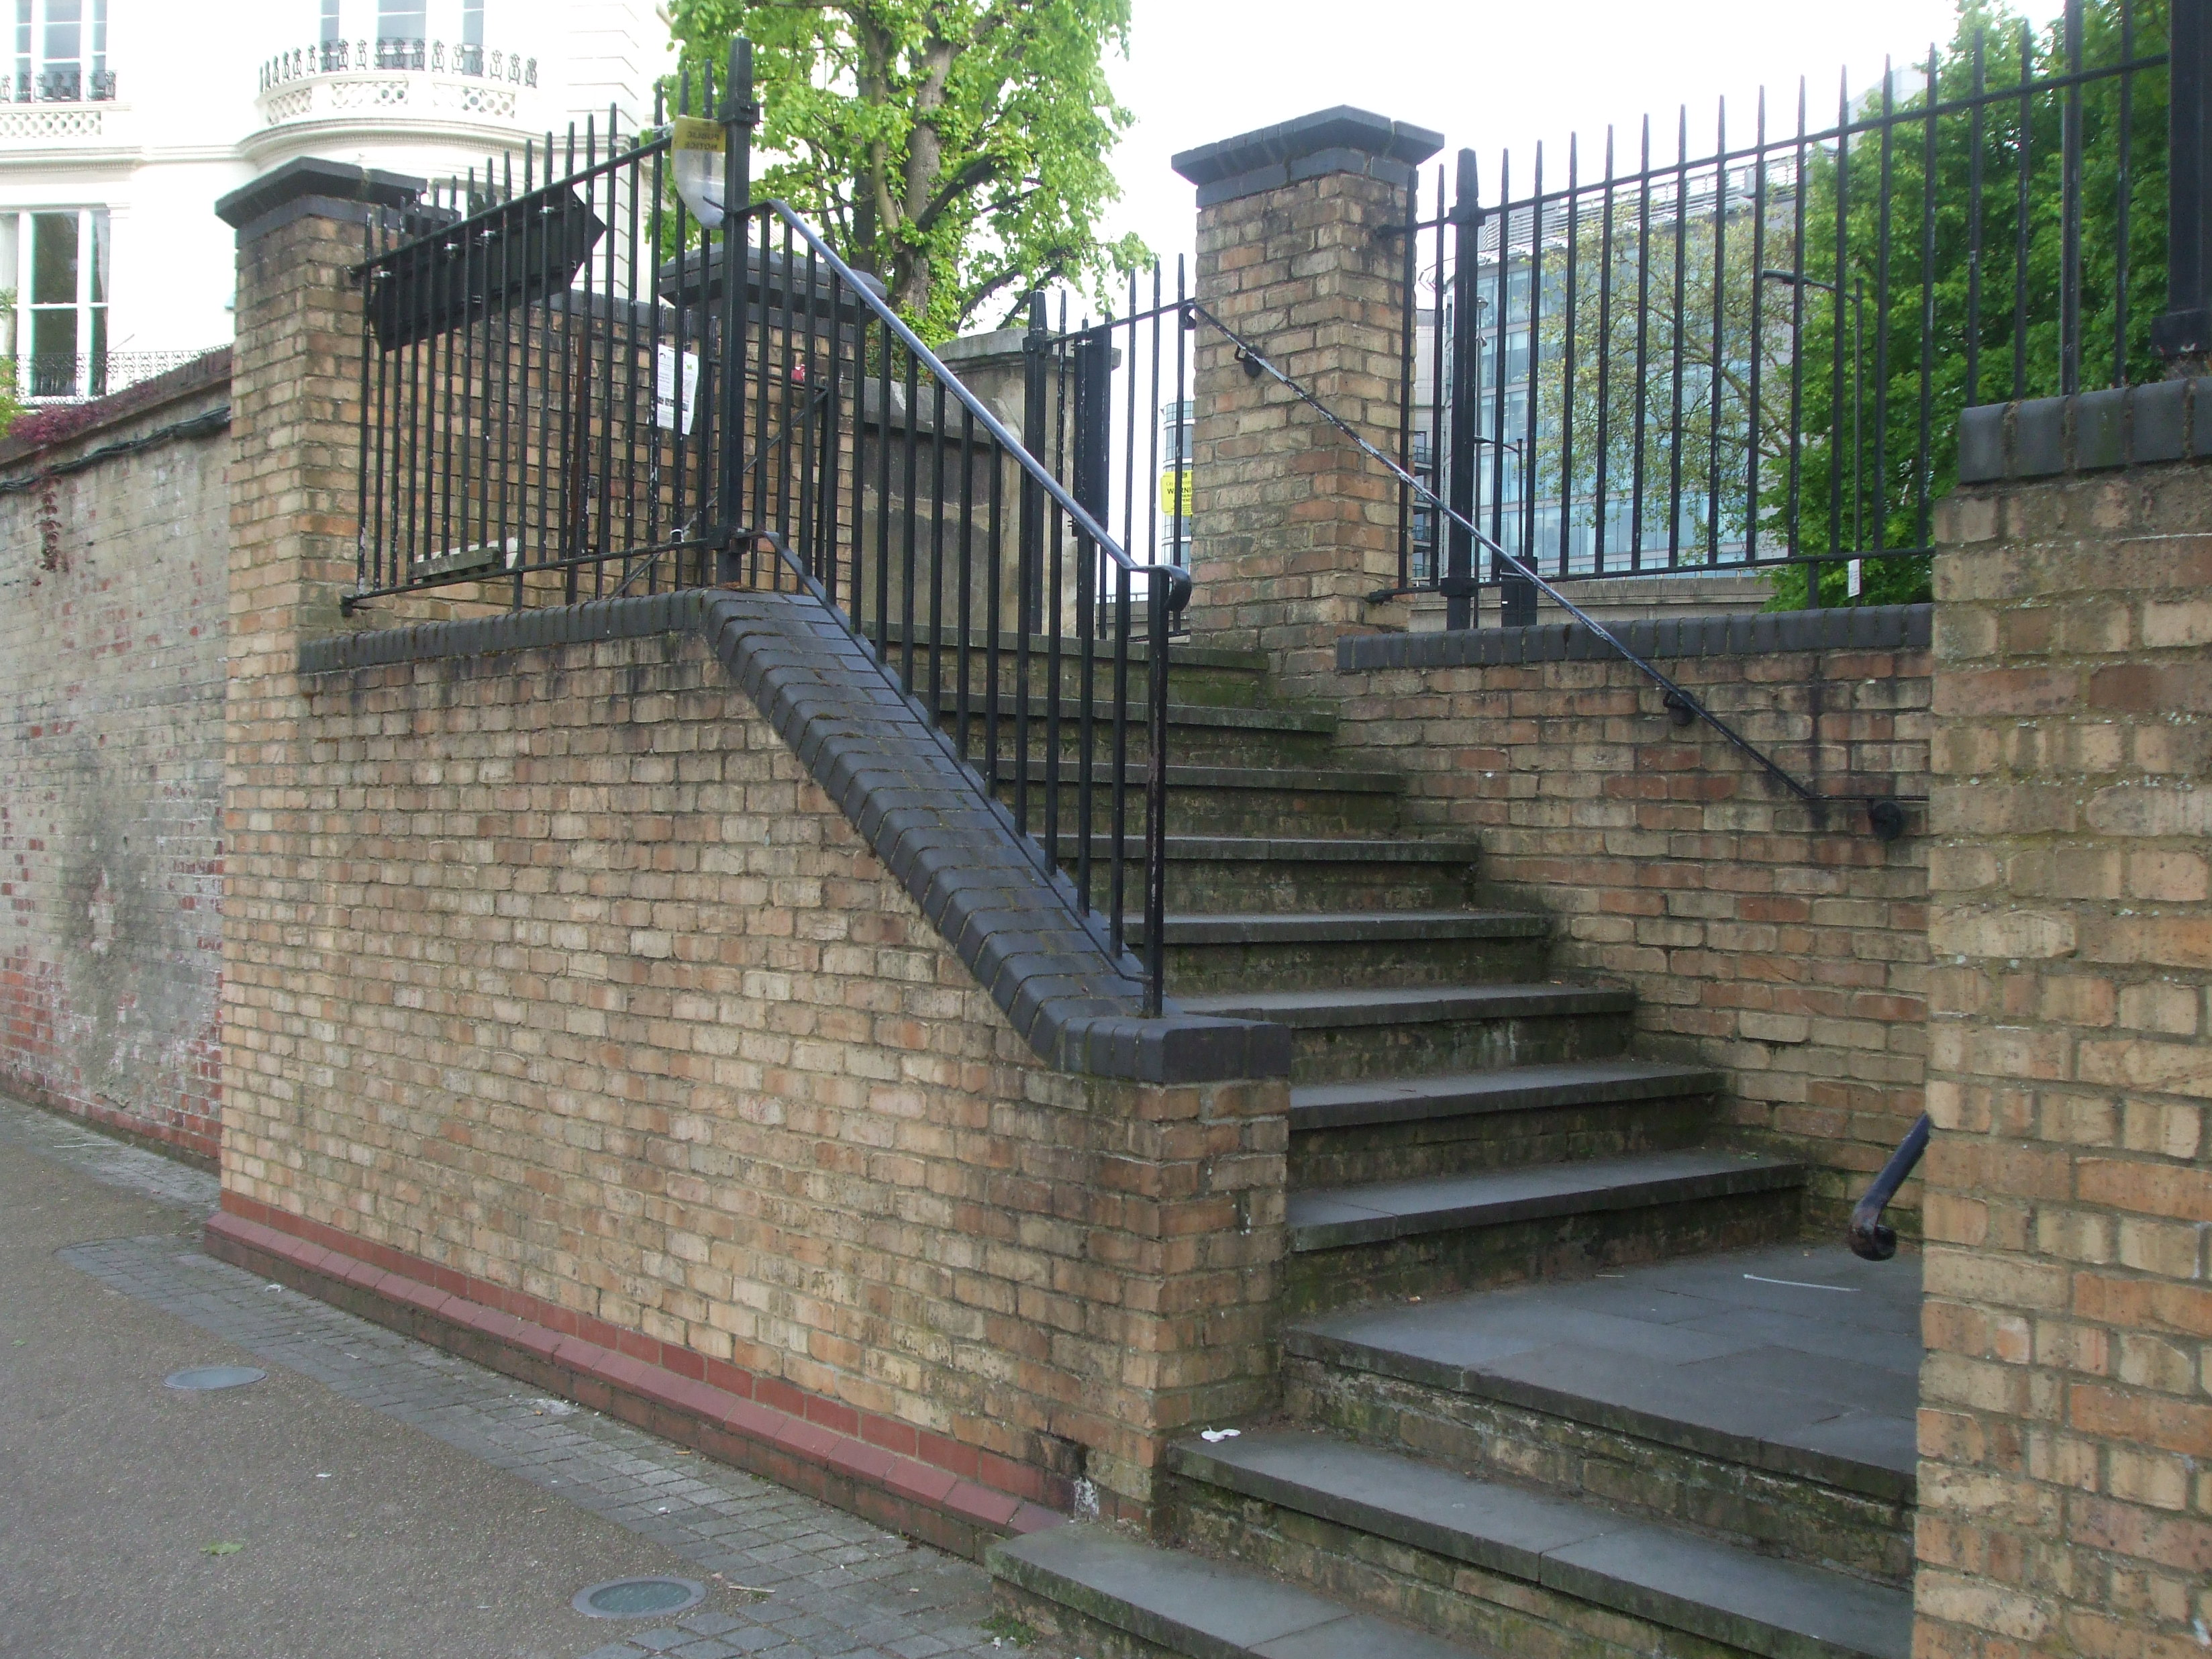 STEPS DOWN TO 'THE LEGERDEMAIN'